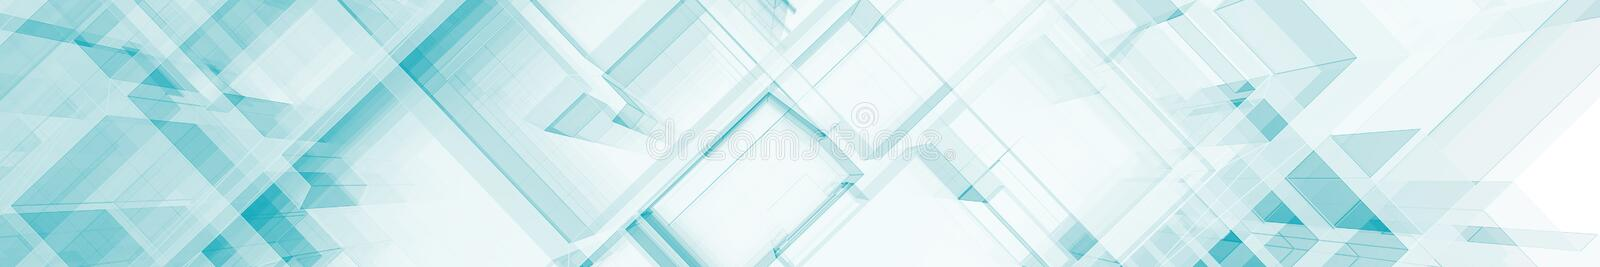 Abstract blue architecture 3d rendering vector illustration